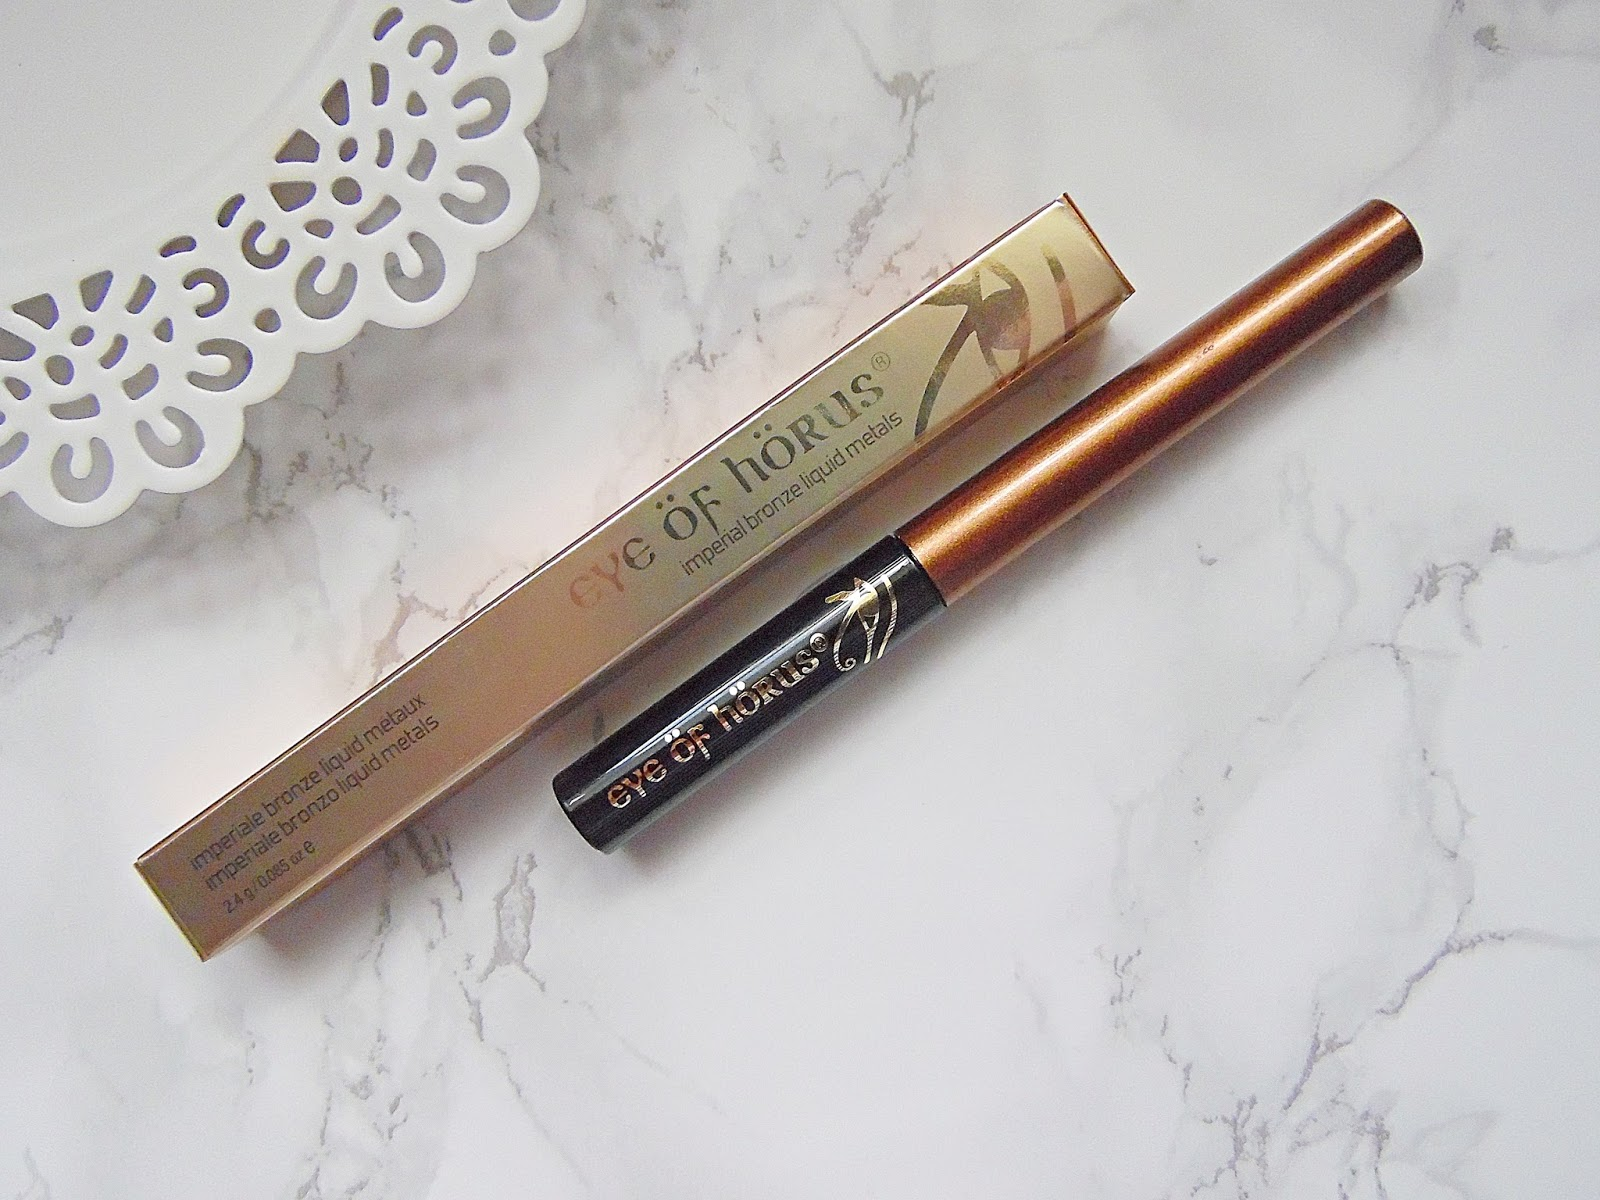 Eye of Horus Liquid Metal Eyeliner